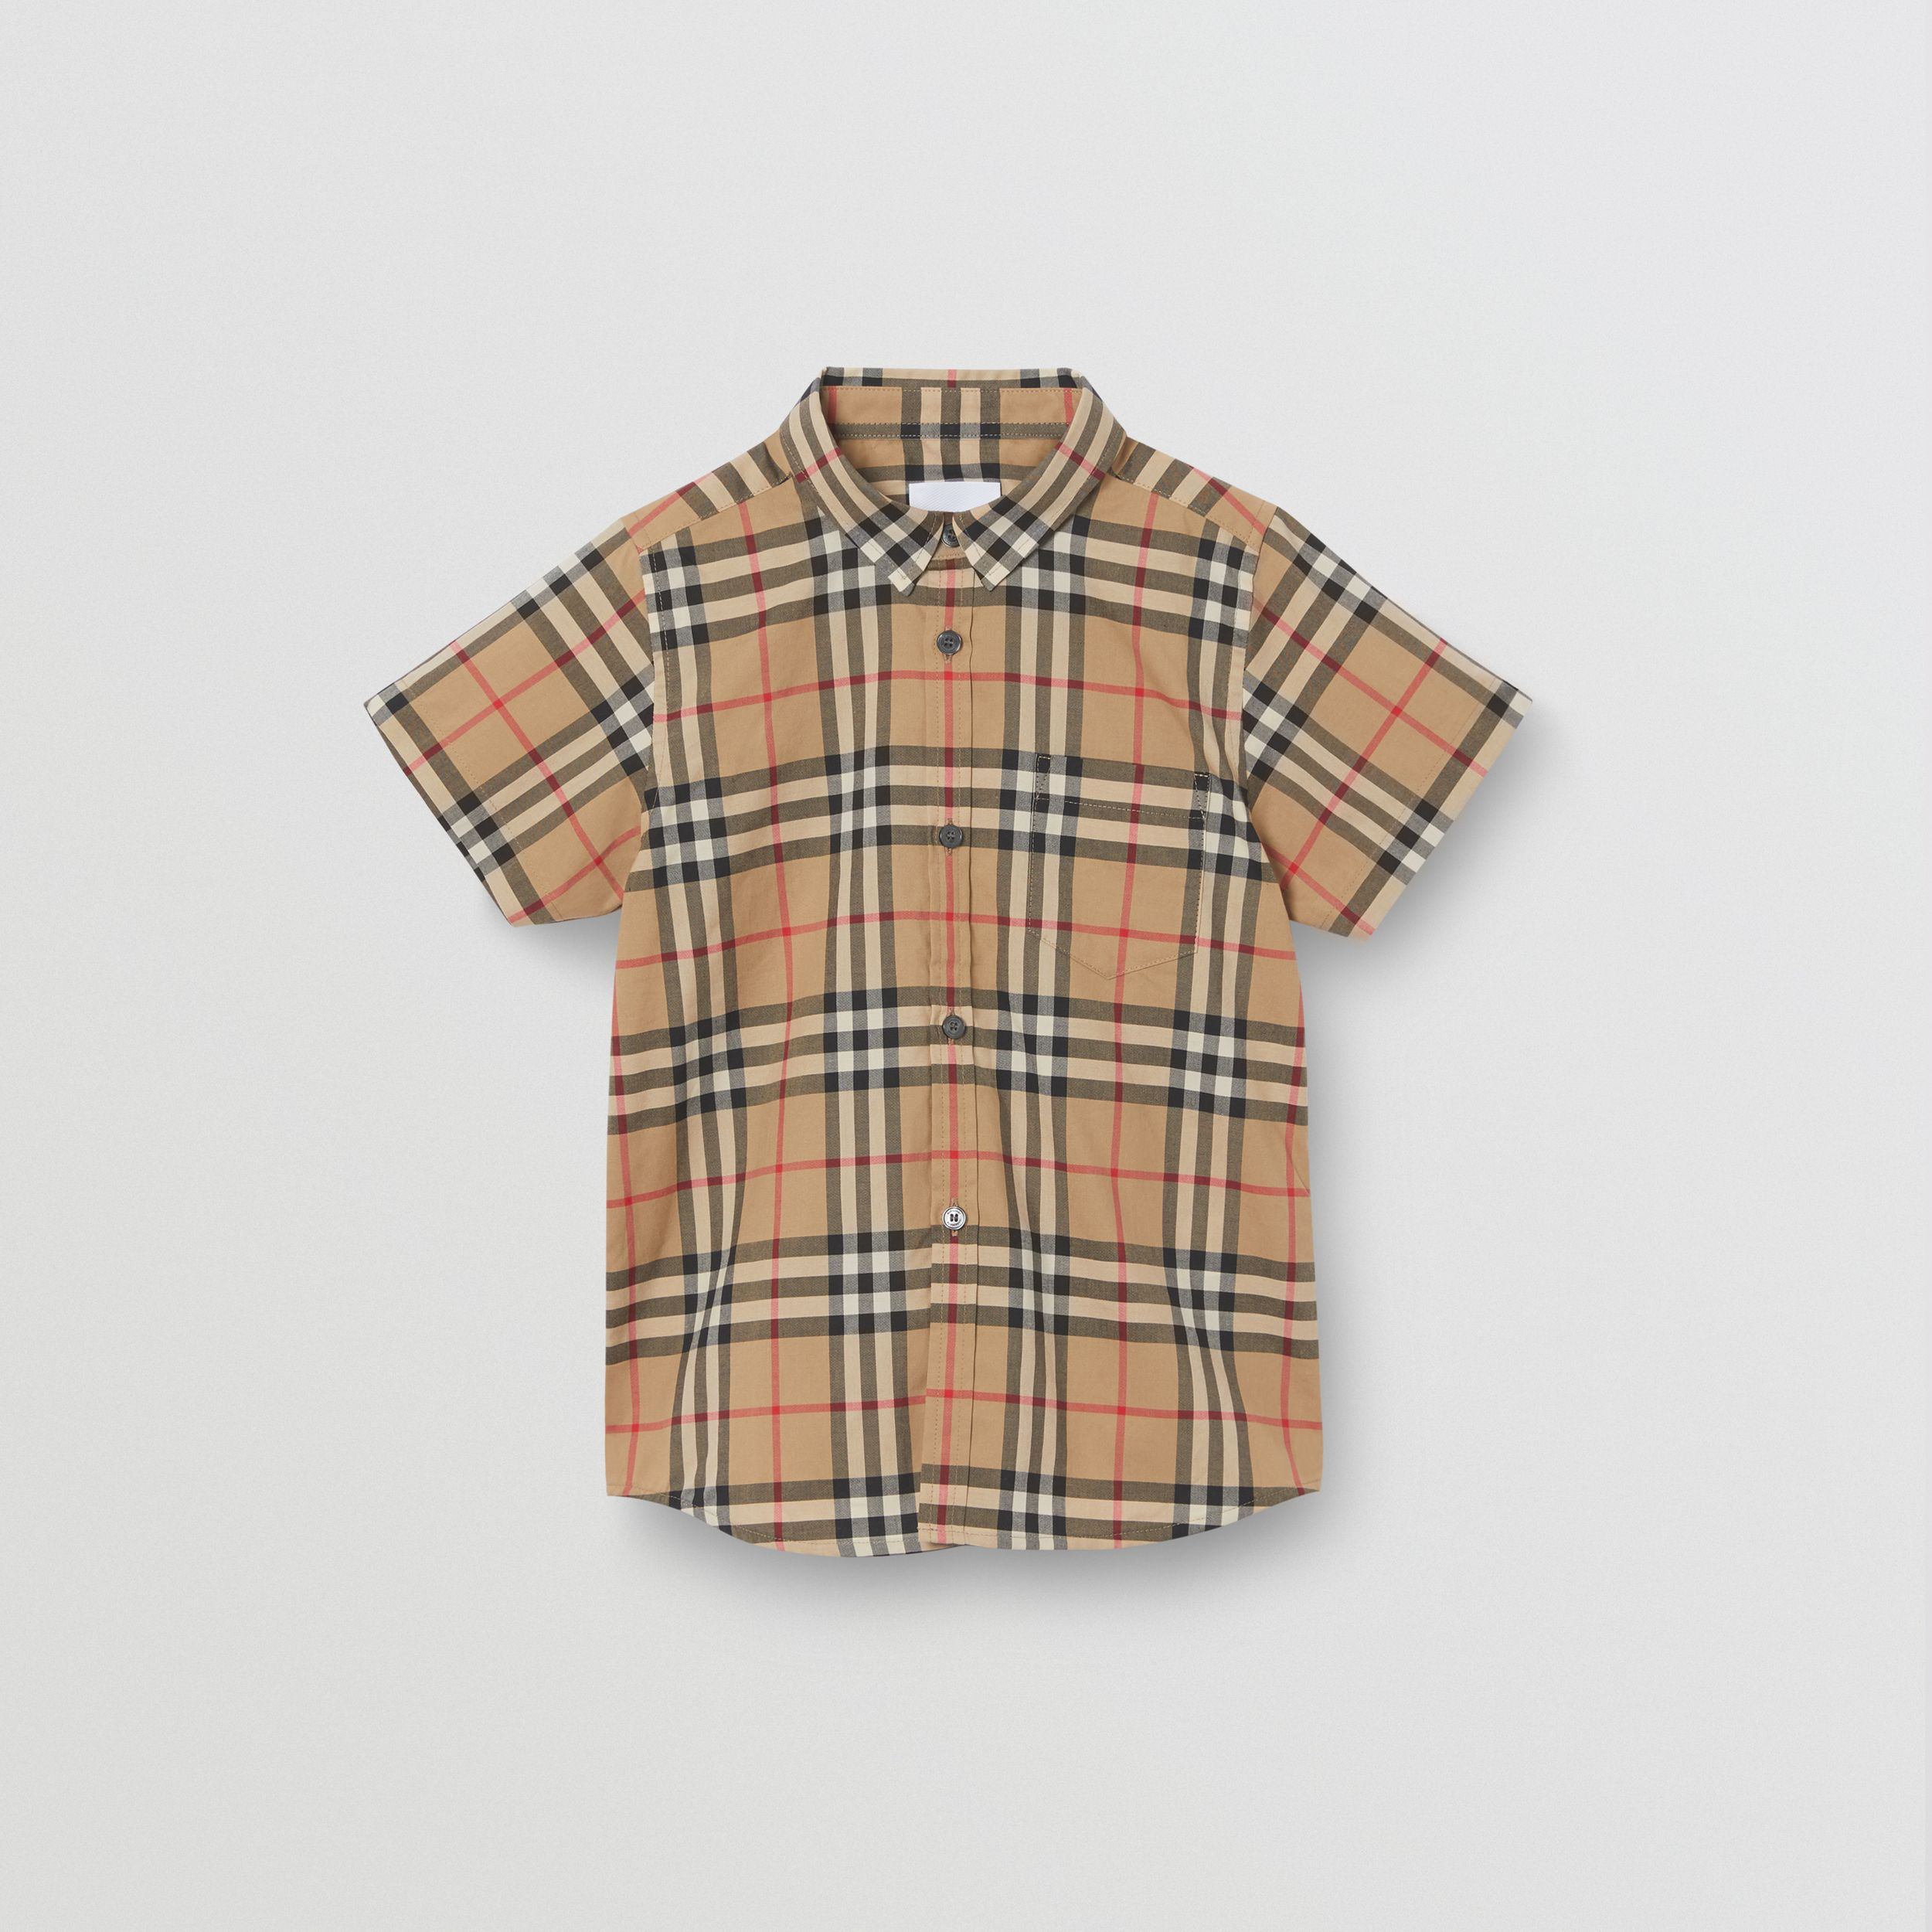 Short-sleeve Vintage Check Cotton Shirt in Archive Beige | Burberry Australia - 1